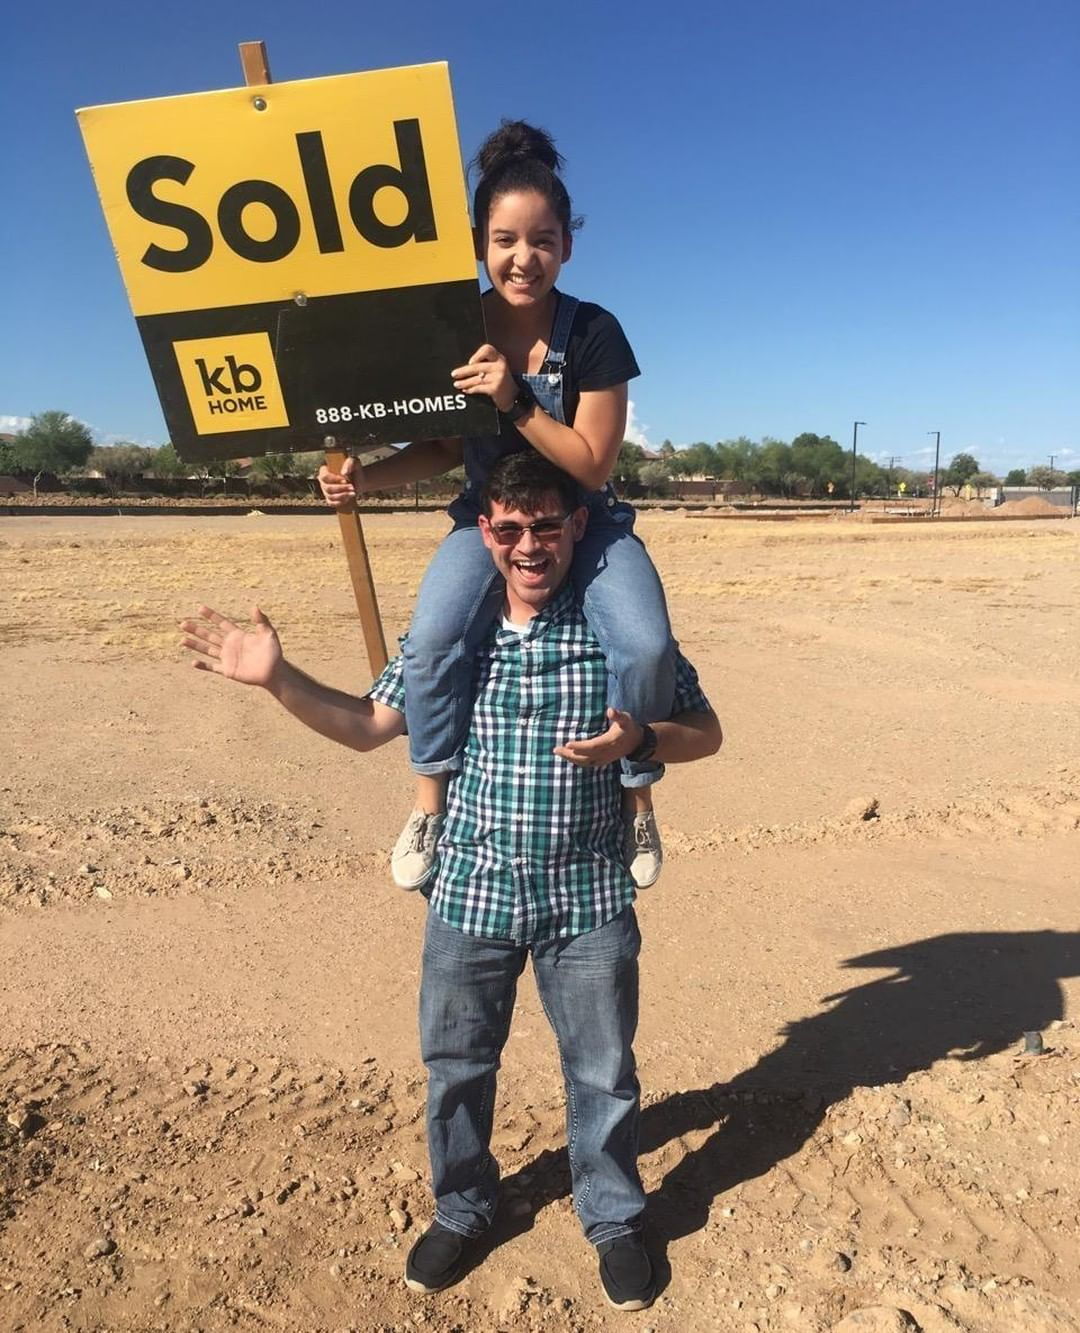 Congrats on your new homesite! Want to know what to expect next?? Click through to see! #KBHome #ArizonaHomeBuilder #AZcommunity #neighborhood #newbuild #custombuilt #newhome